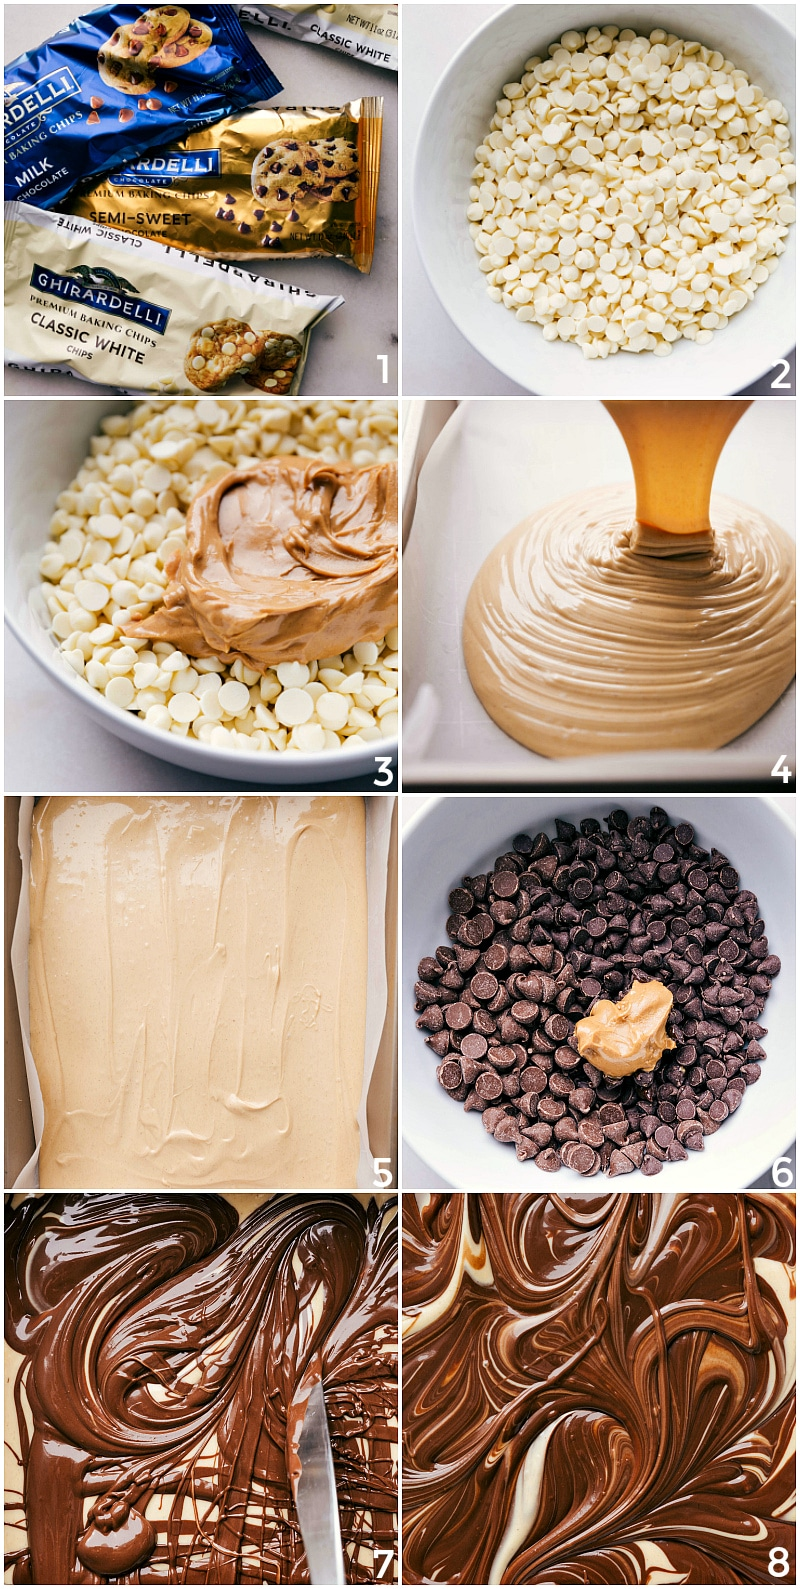 Process shots of the tiger butter fudge recipe being made